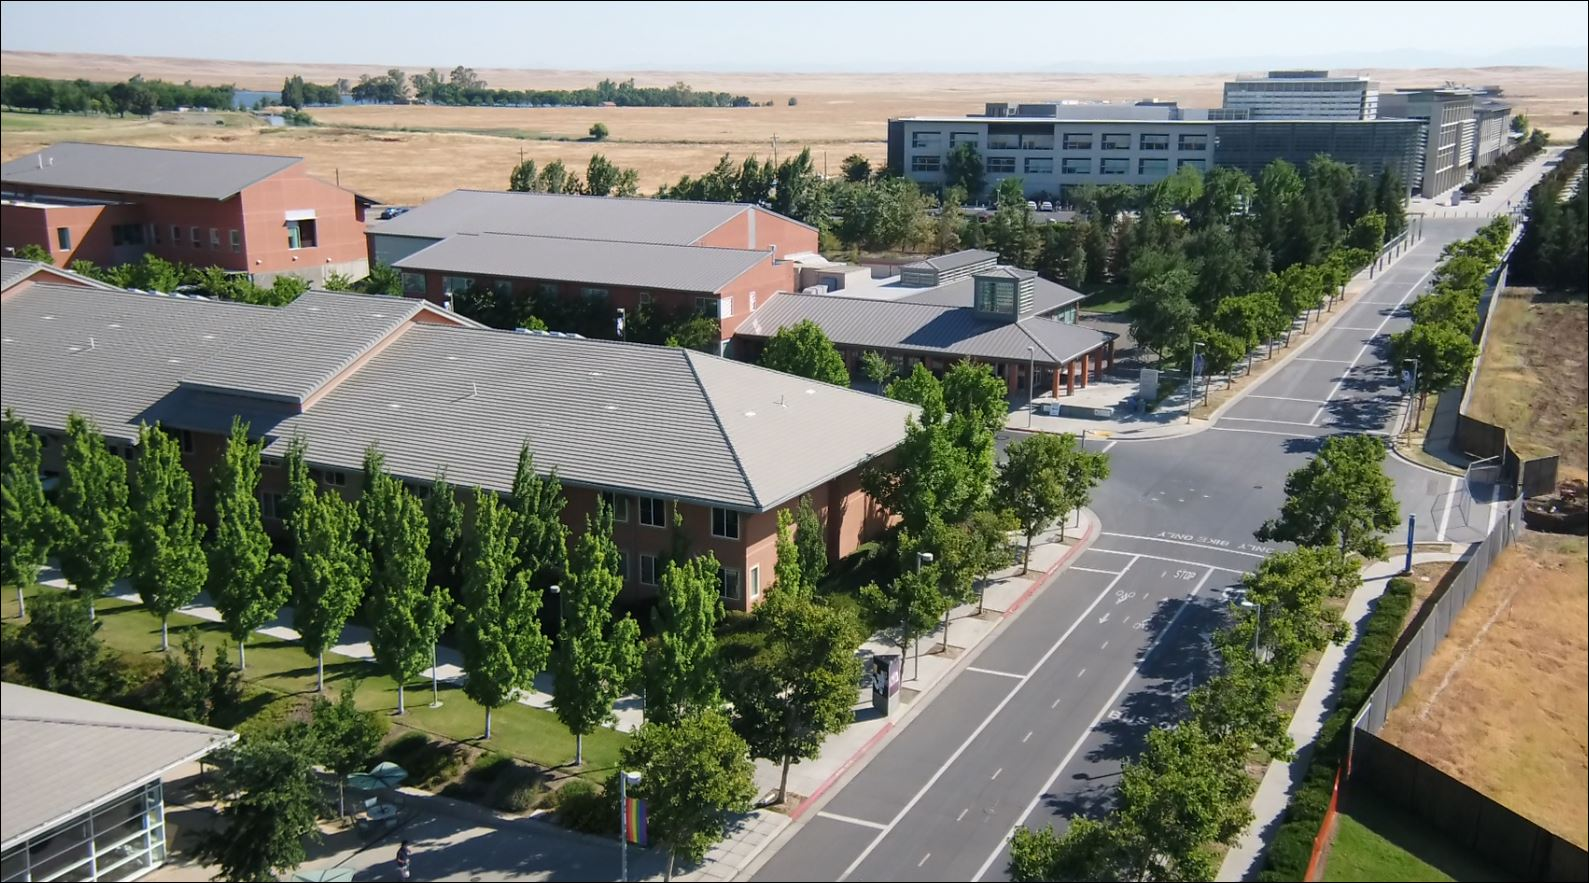 Kopi's Hometown Connections is heading to Merced, the home of University of California, Merced.